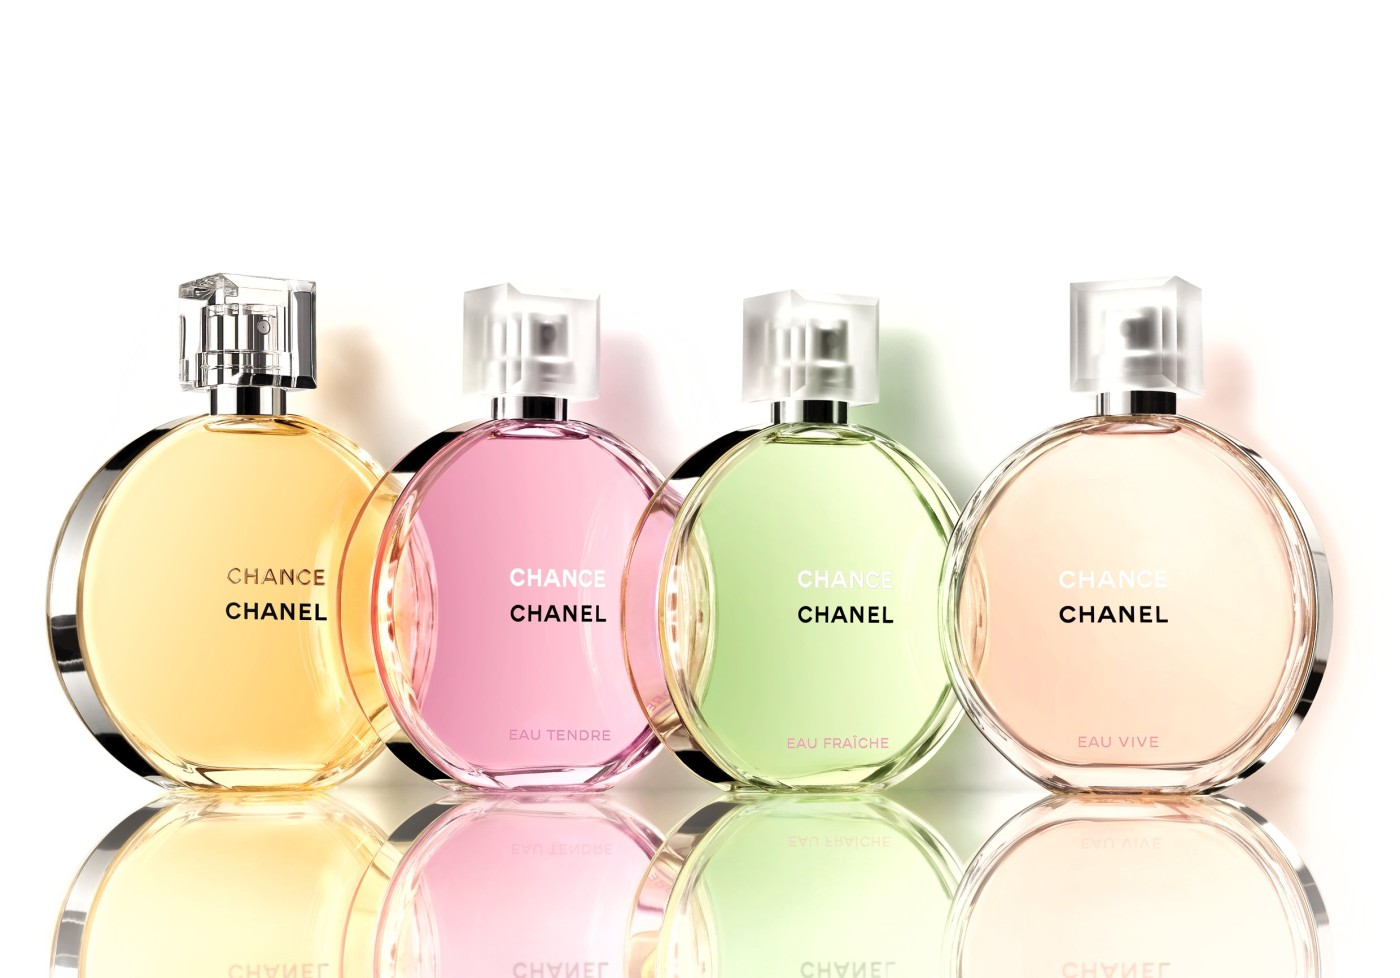 chance eau vive chanel parfum ein neues parfum f r frauen 2015. Black Bedroom Furniture Sets. Home Design Ideas